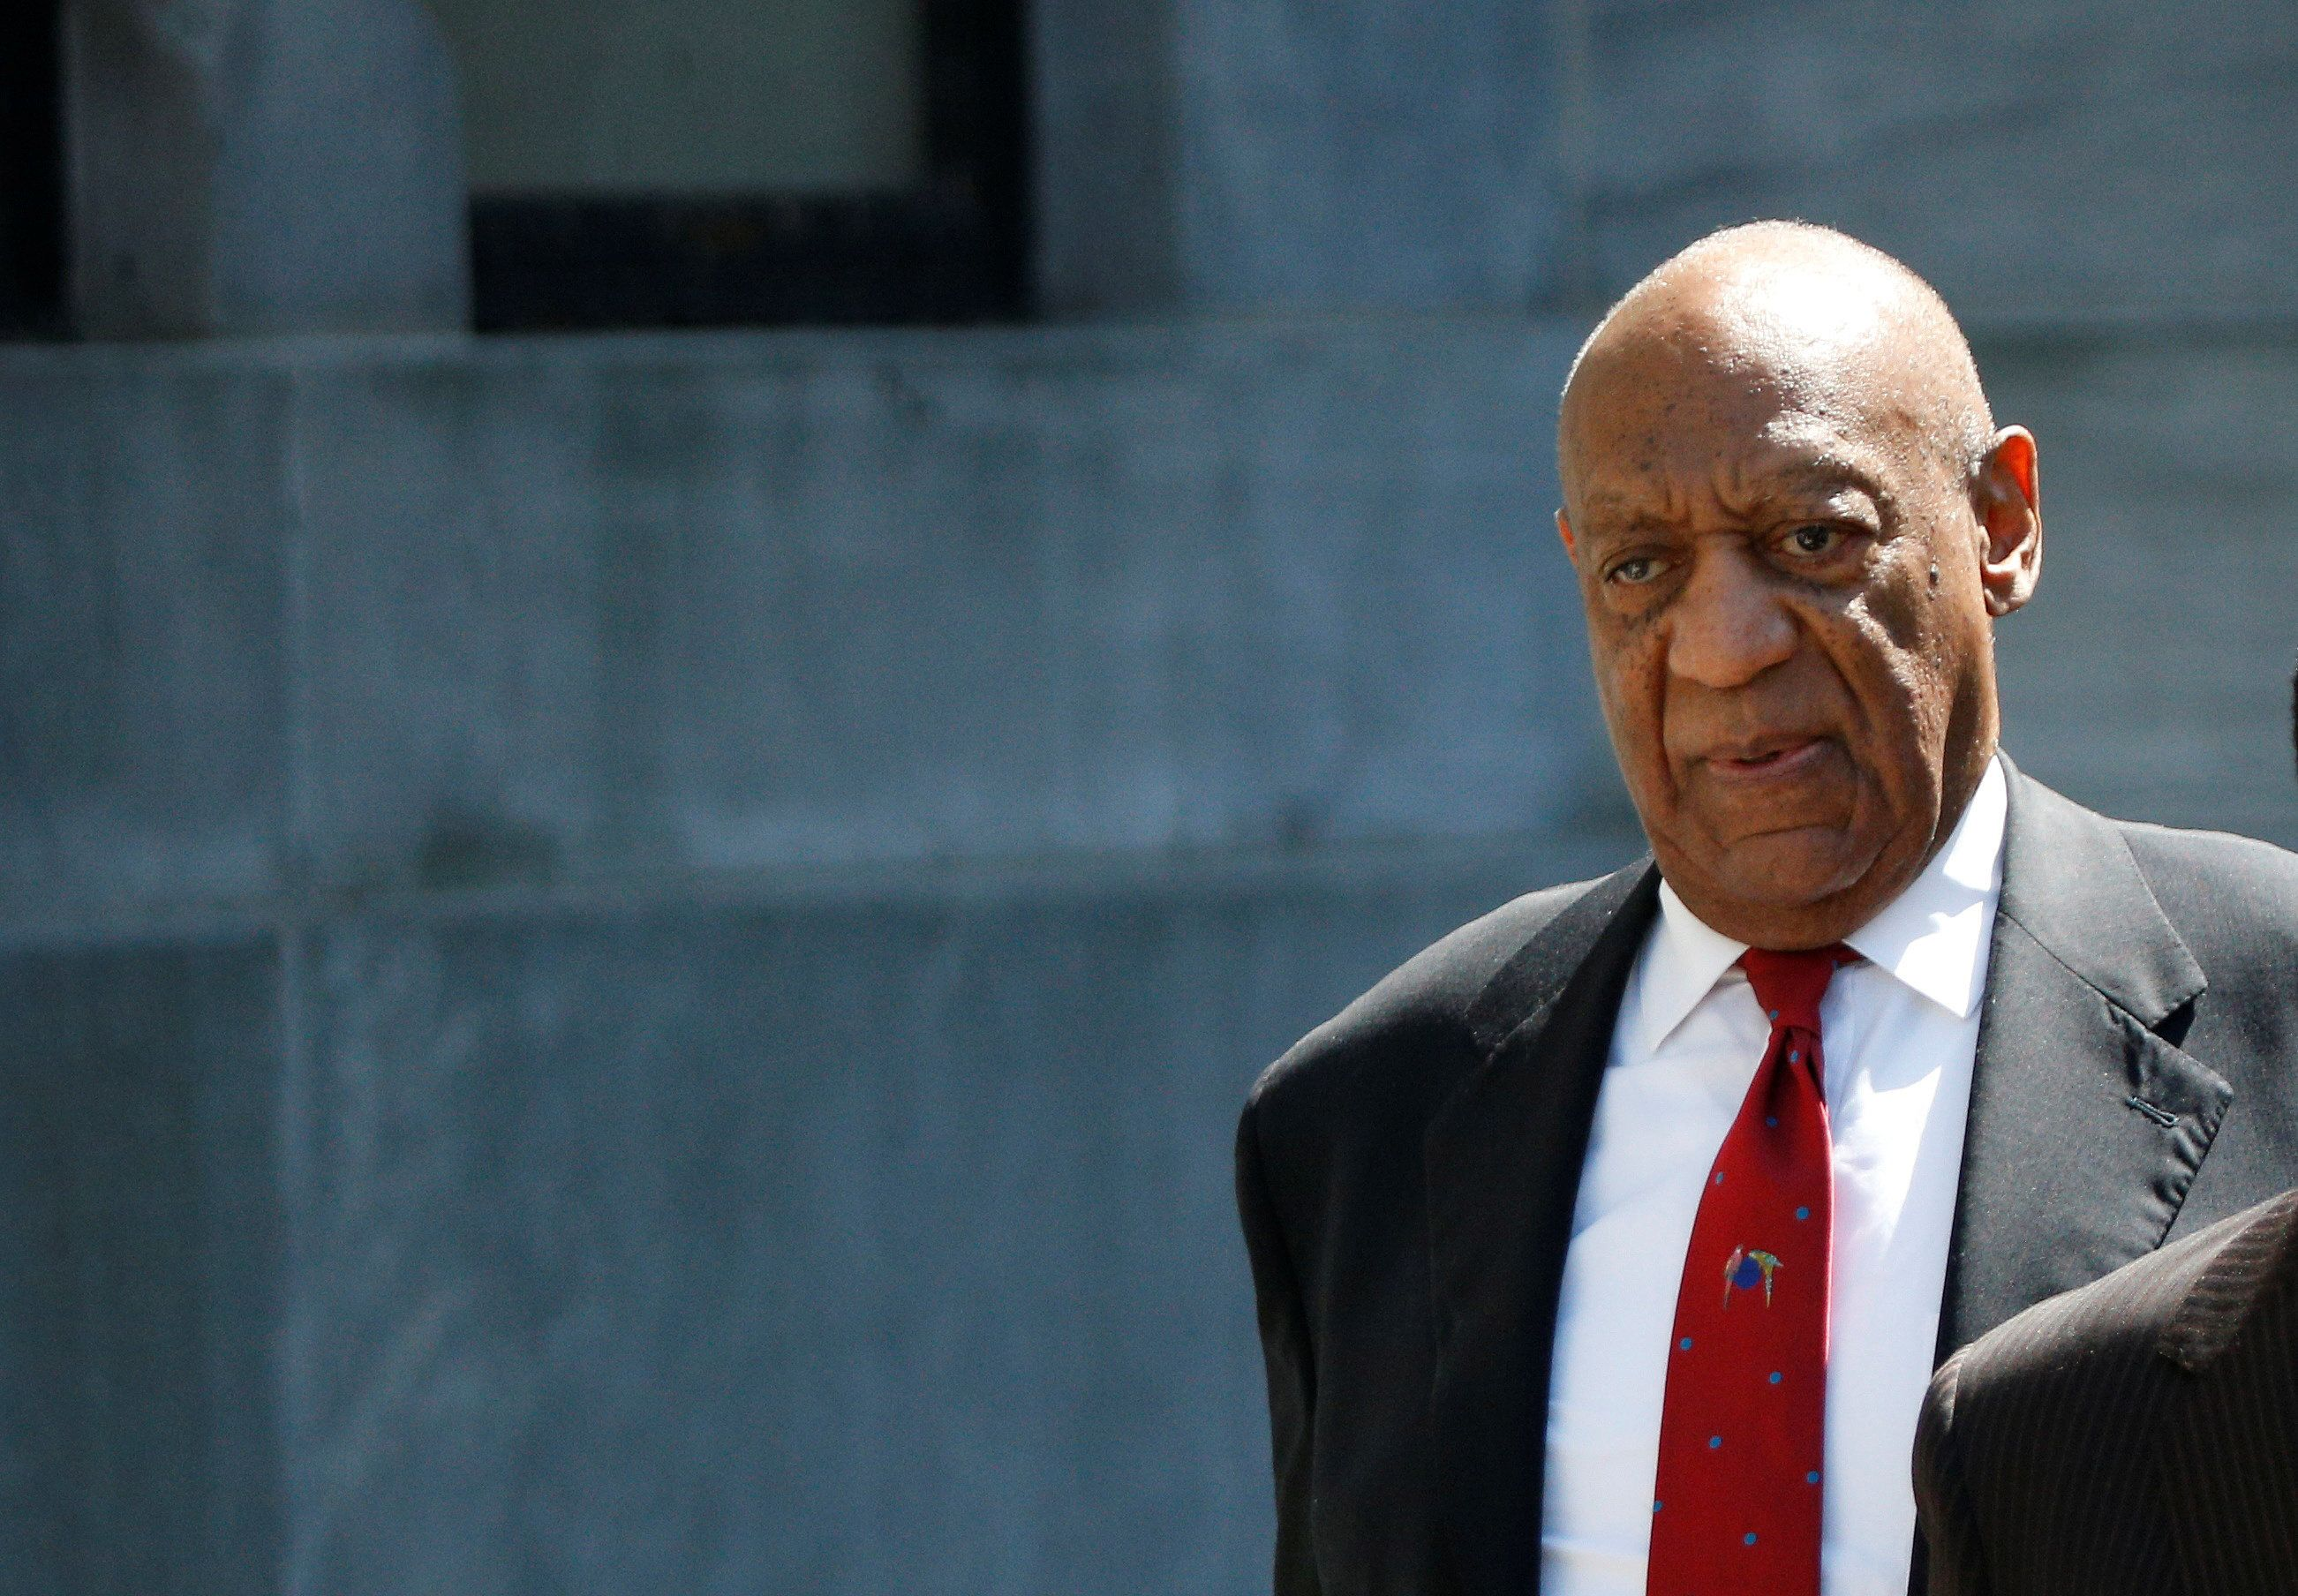 Bill Cosby exits the Montgomery County Courthouse after a jury convicted him in a sexual assault retrial in Norristown, Penns